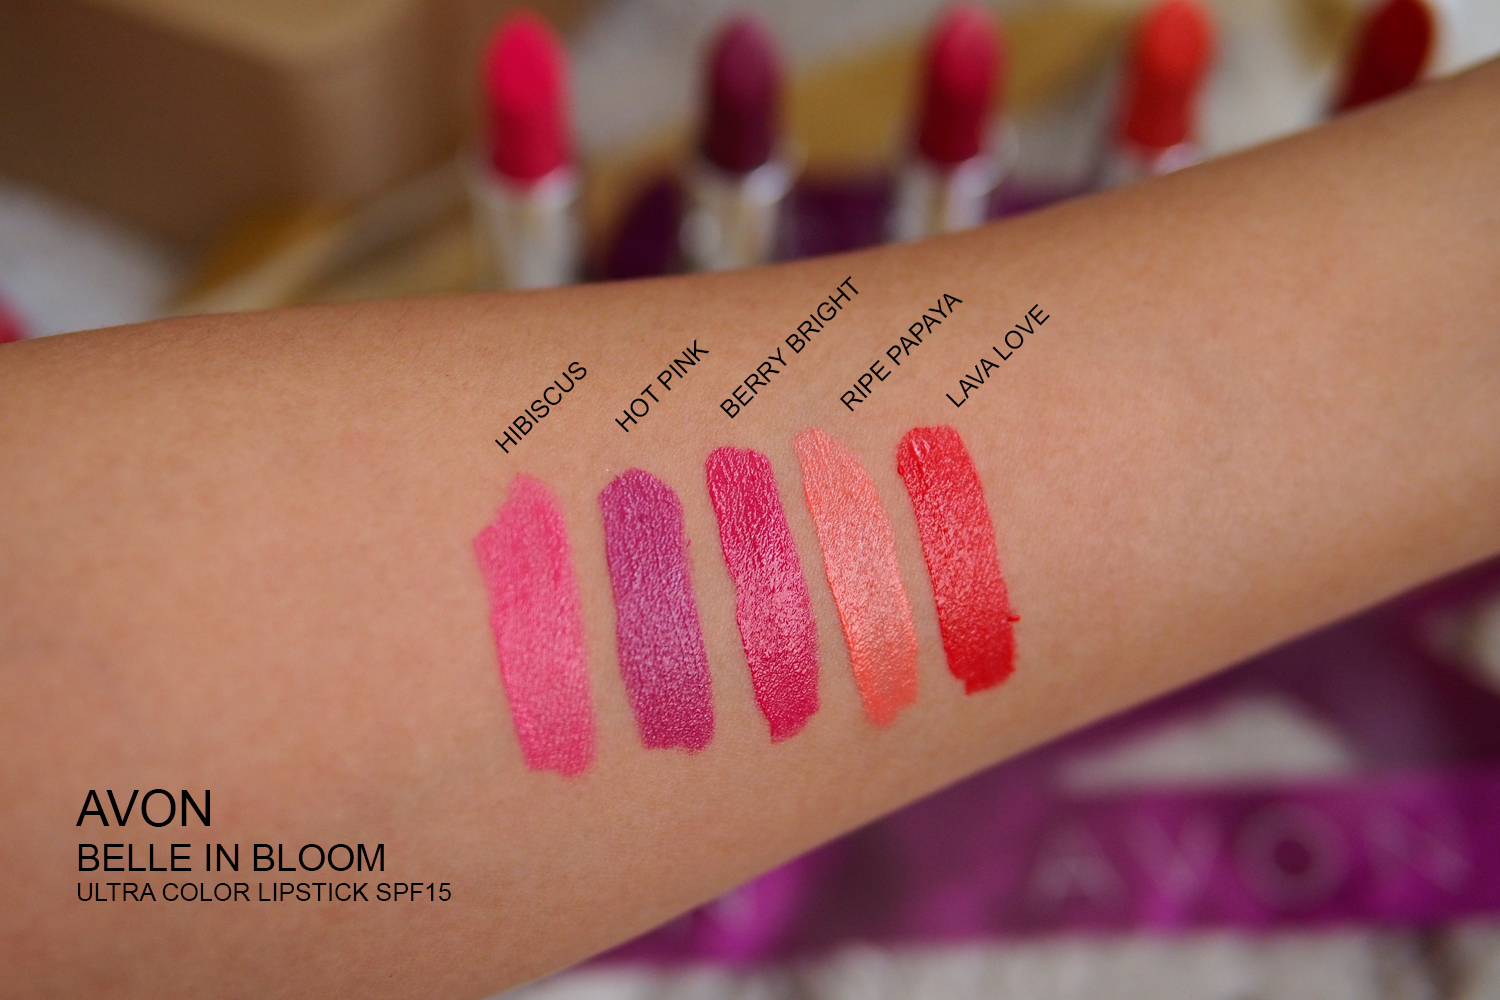 AVON BELLE IN BLOOM LIPSTICKS SWATCHES